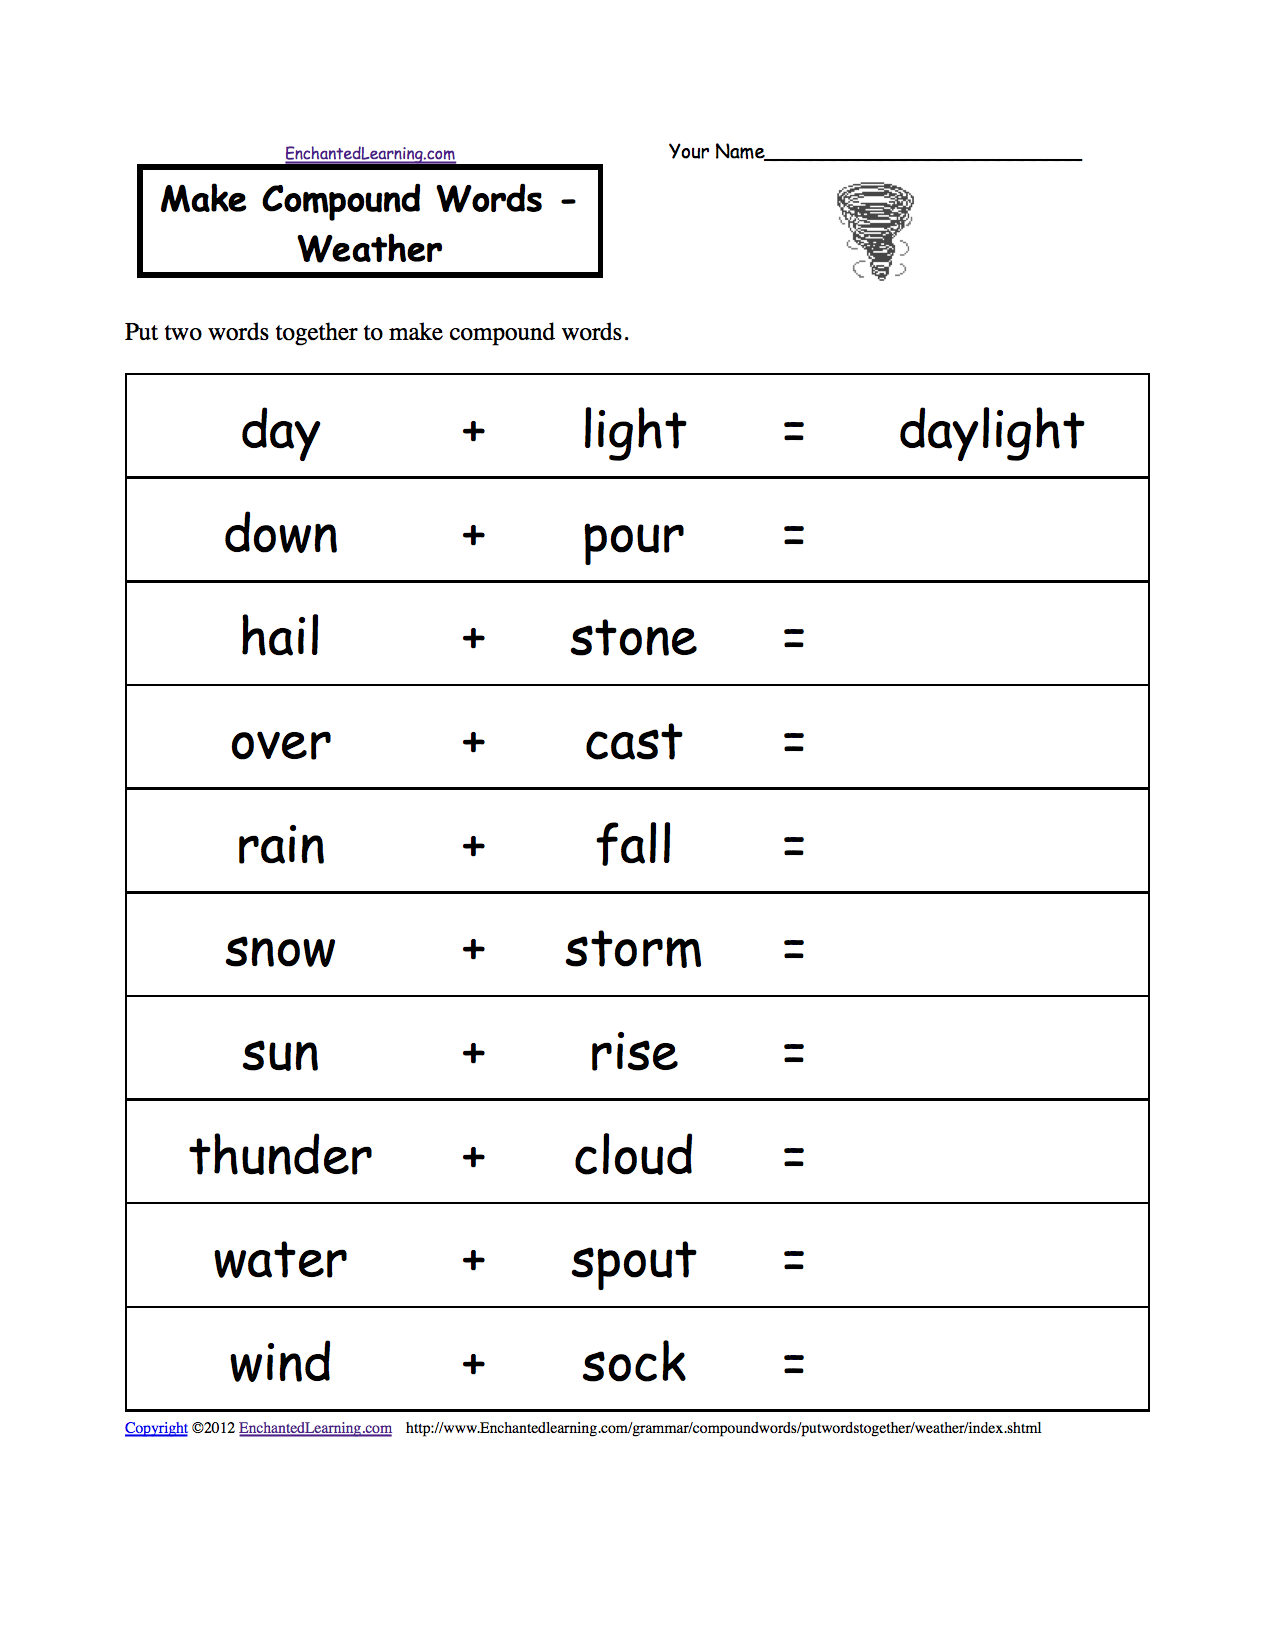 worksheet Weather Worksheets For Kindergarten weather related activities at enchantedlearning com make compound words printable worksheet